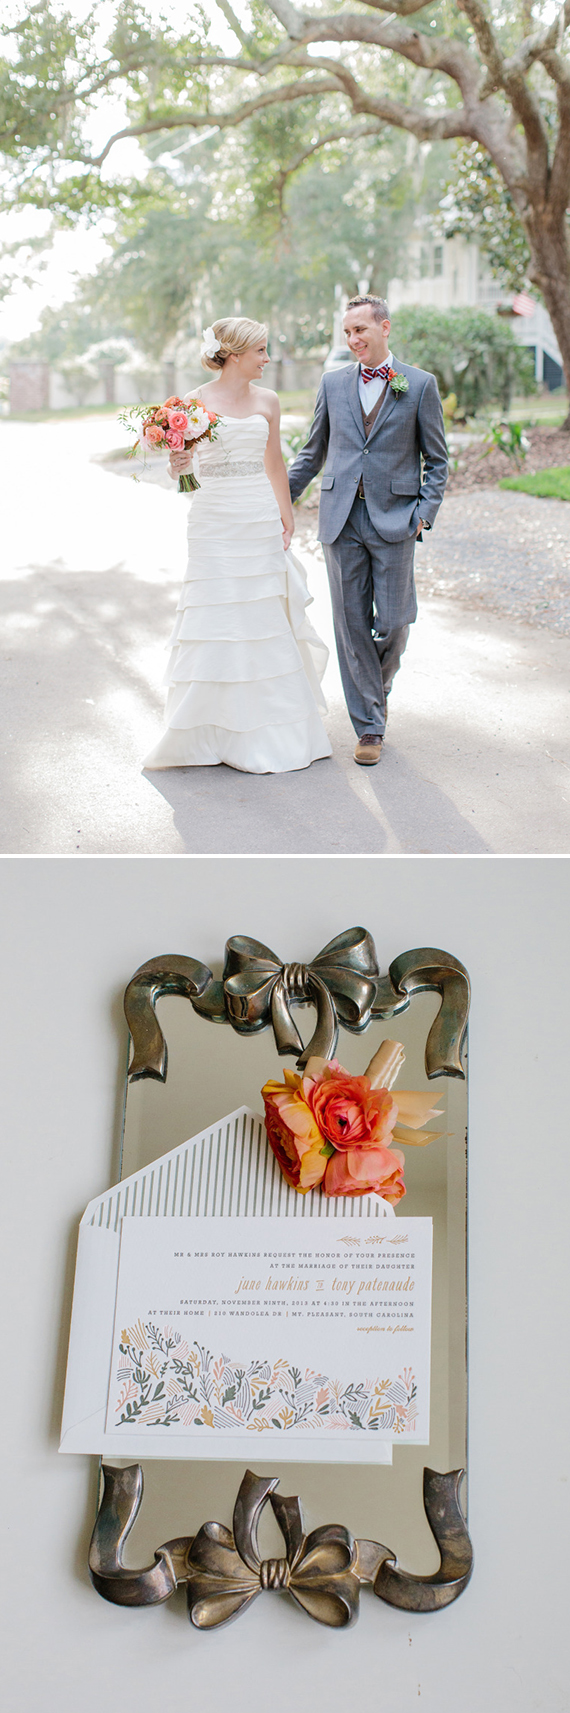 minted-real-wedding-the-grainfield-1